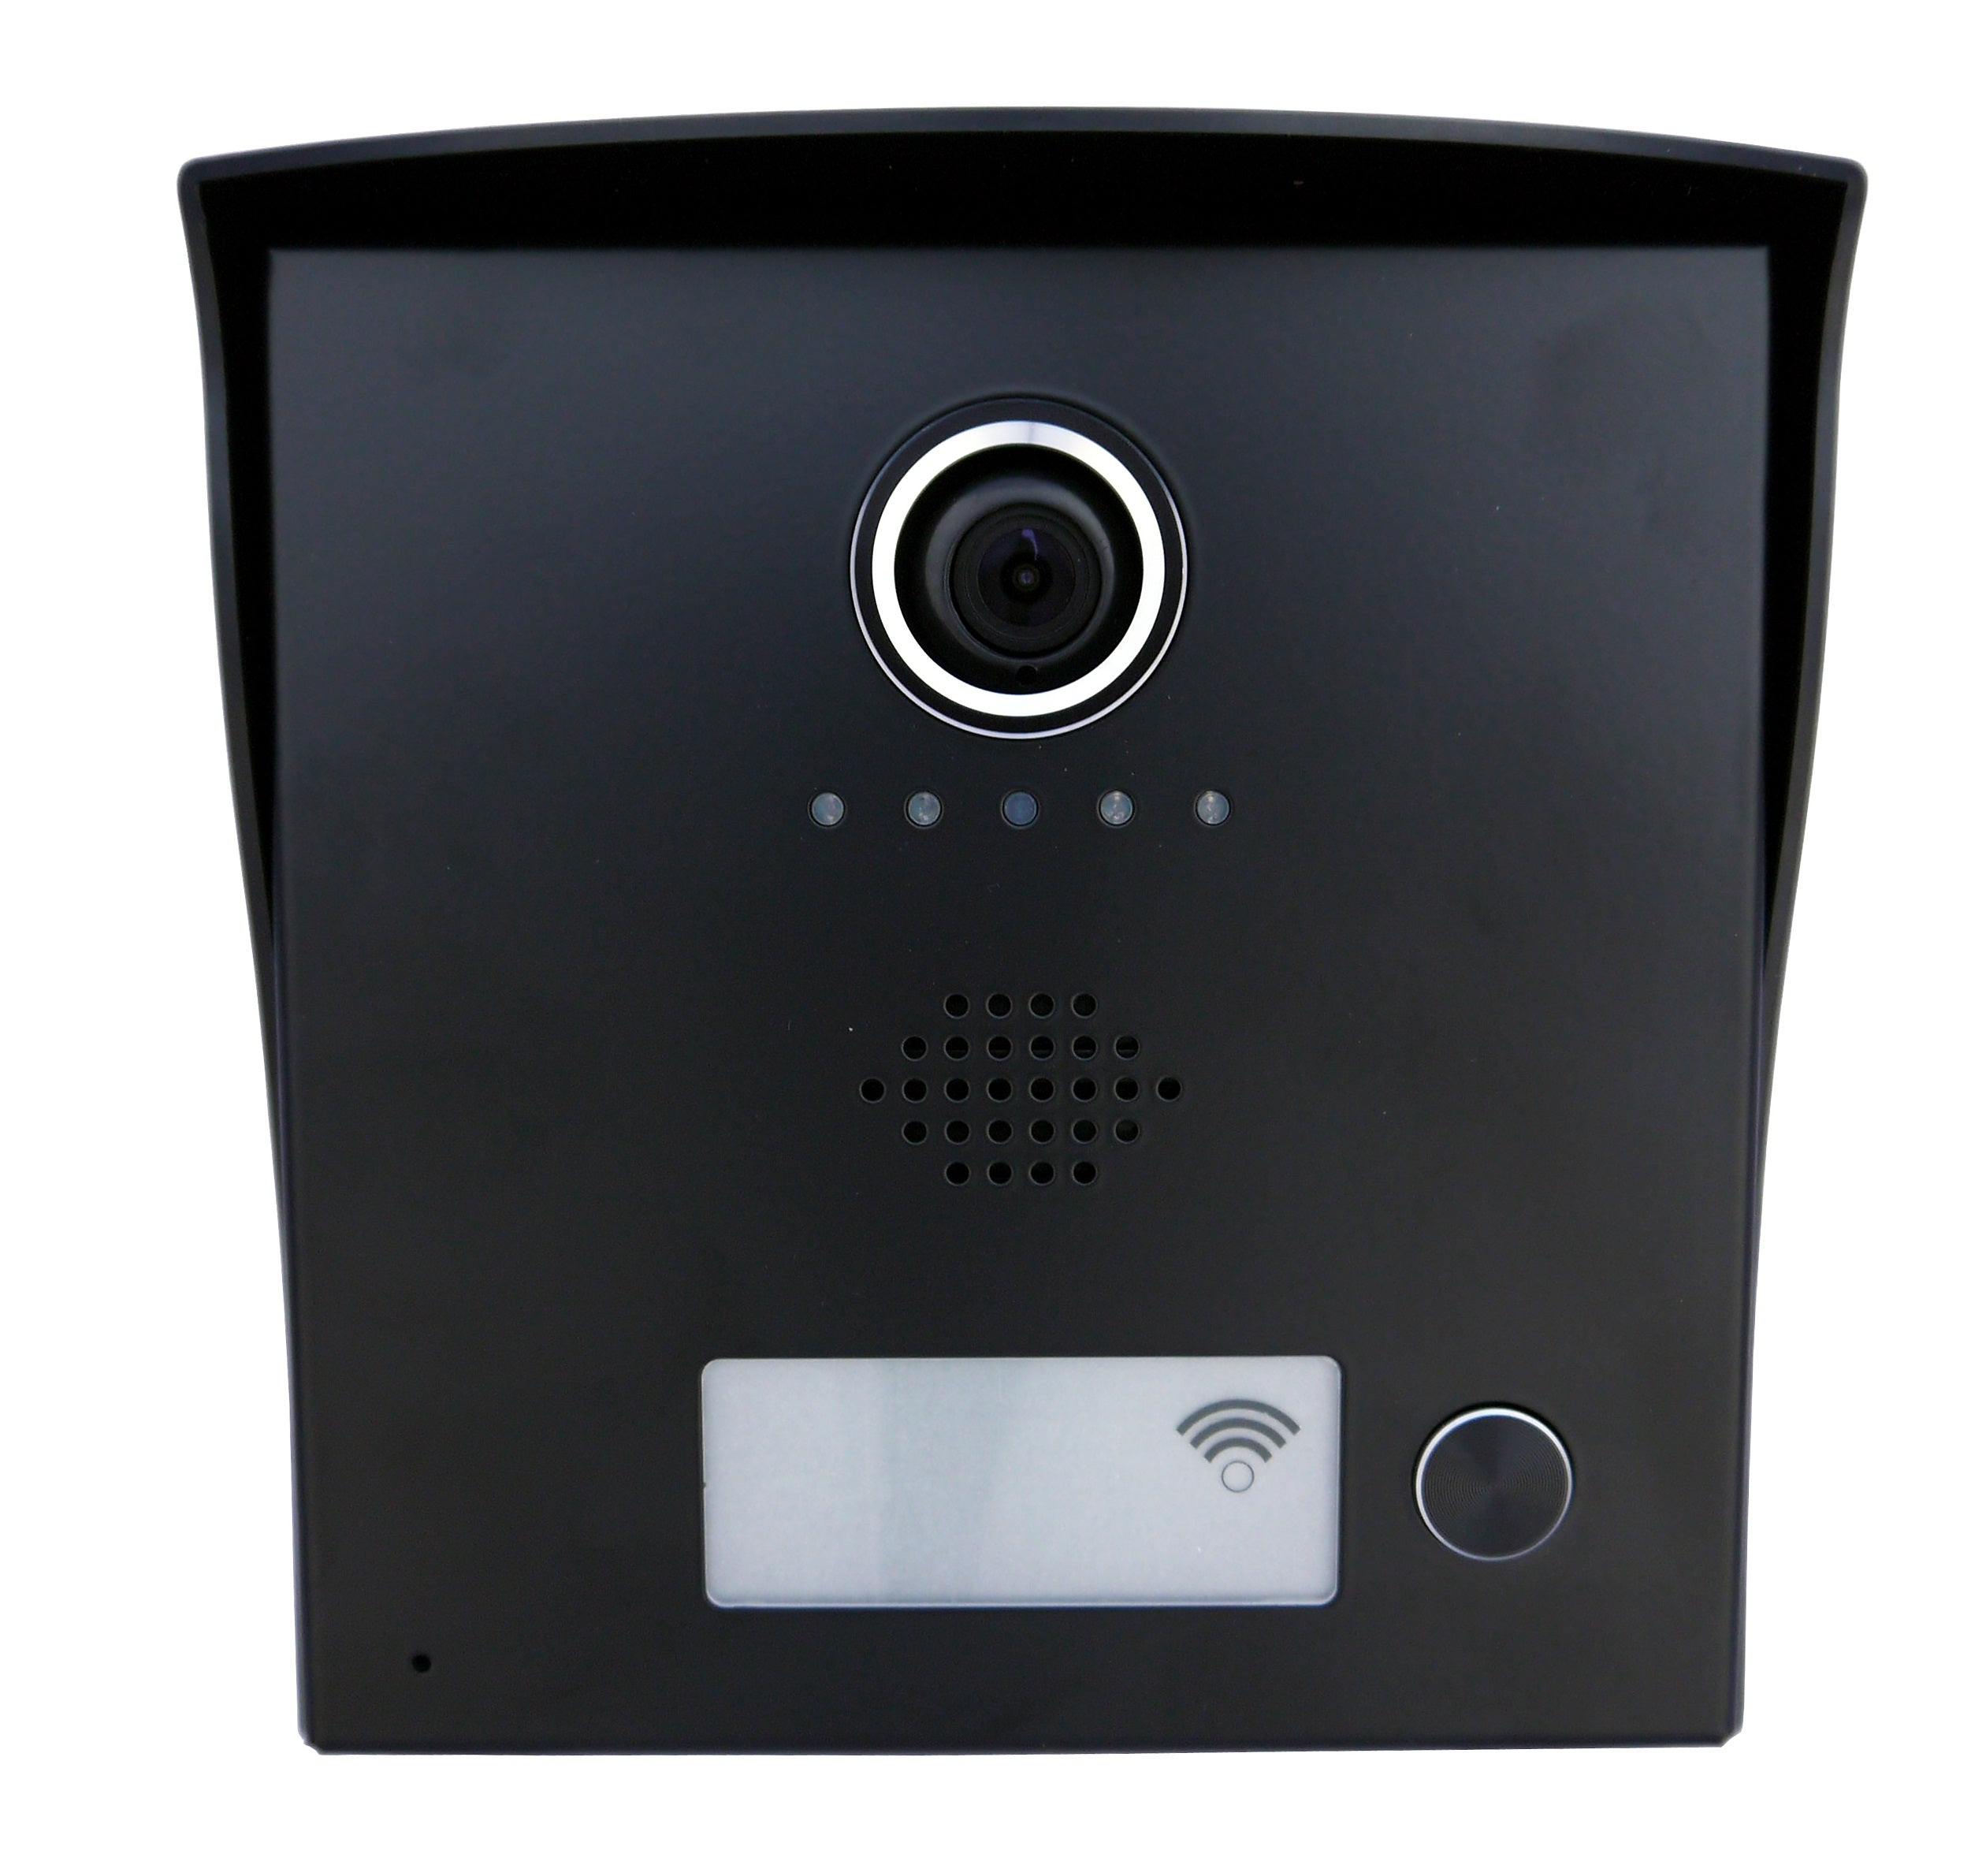 Sykik SEYE660H Eye Wi-Fi Video Door Bell, See who is at The Door When They Ring Your Door Bell